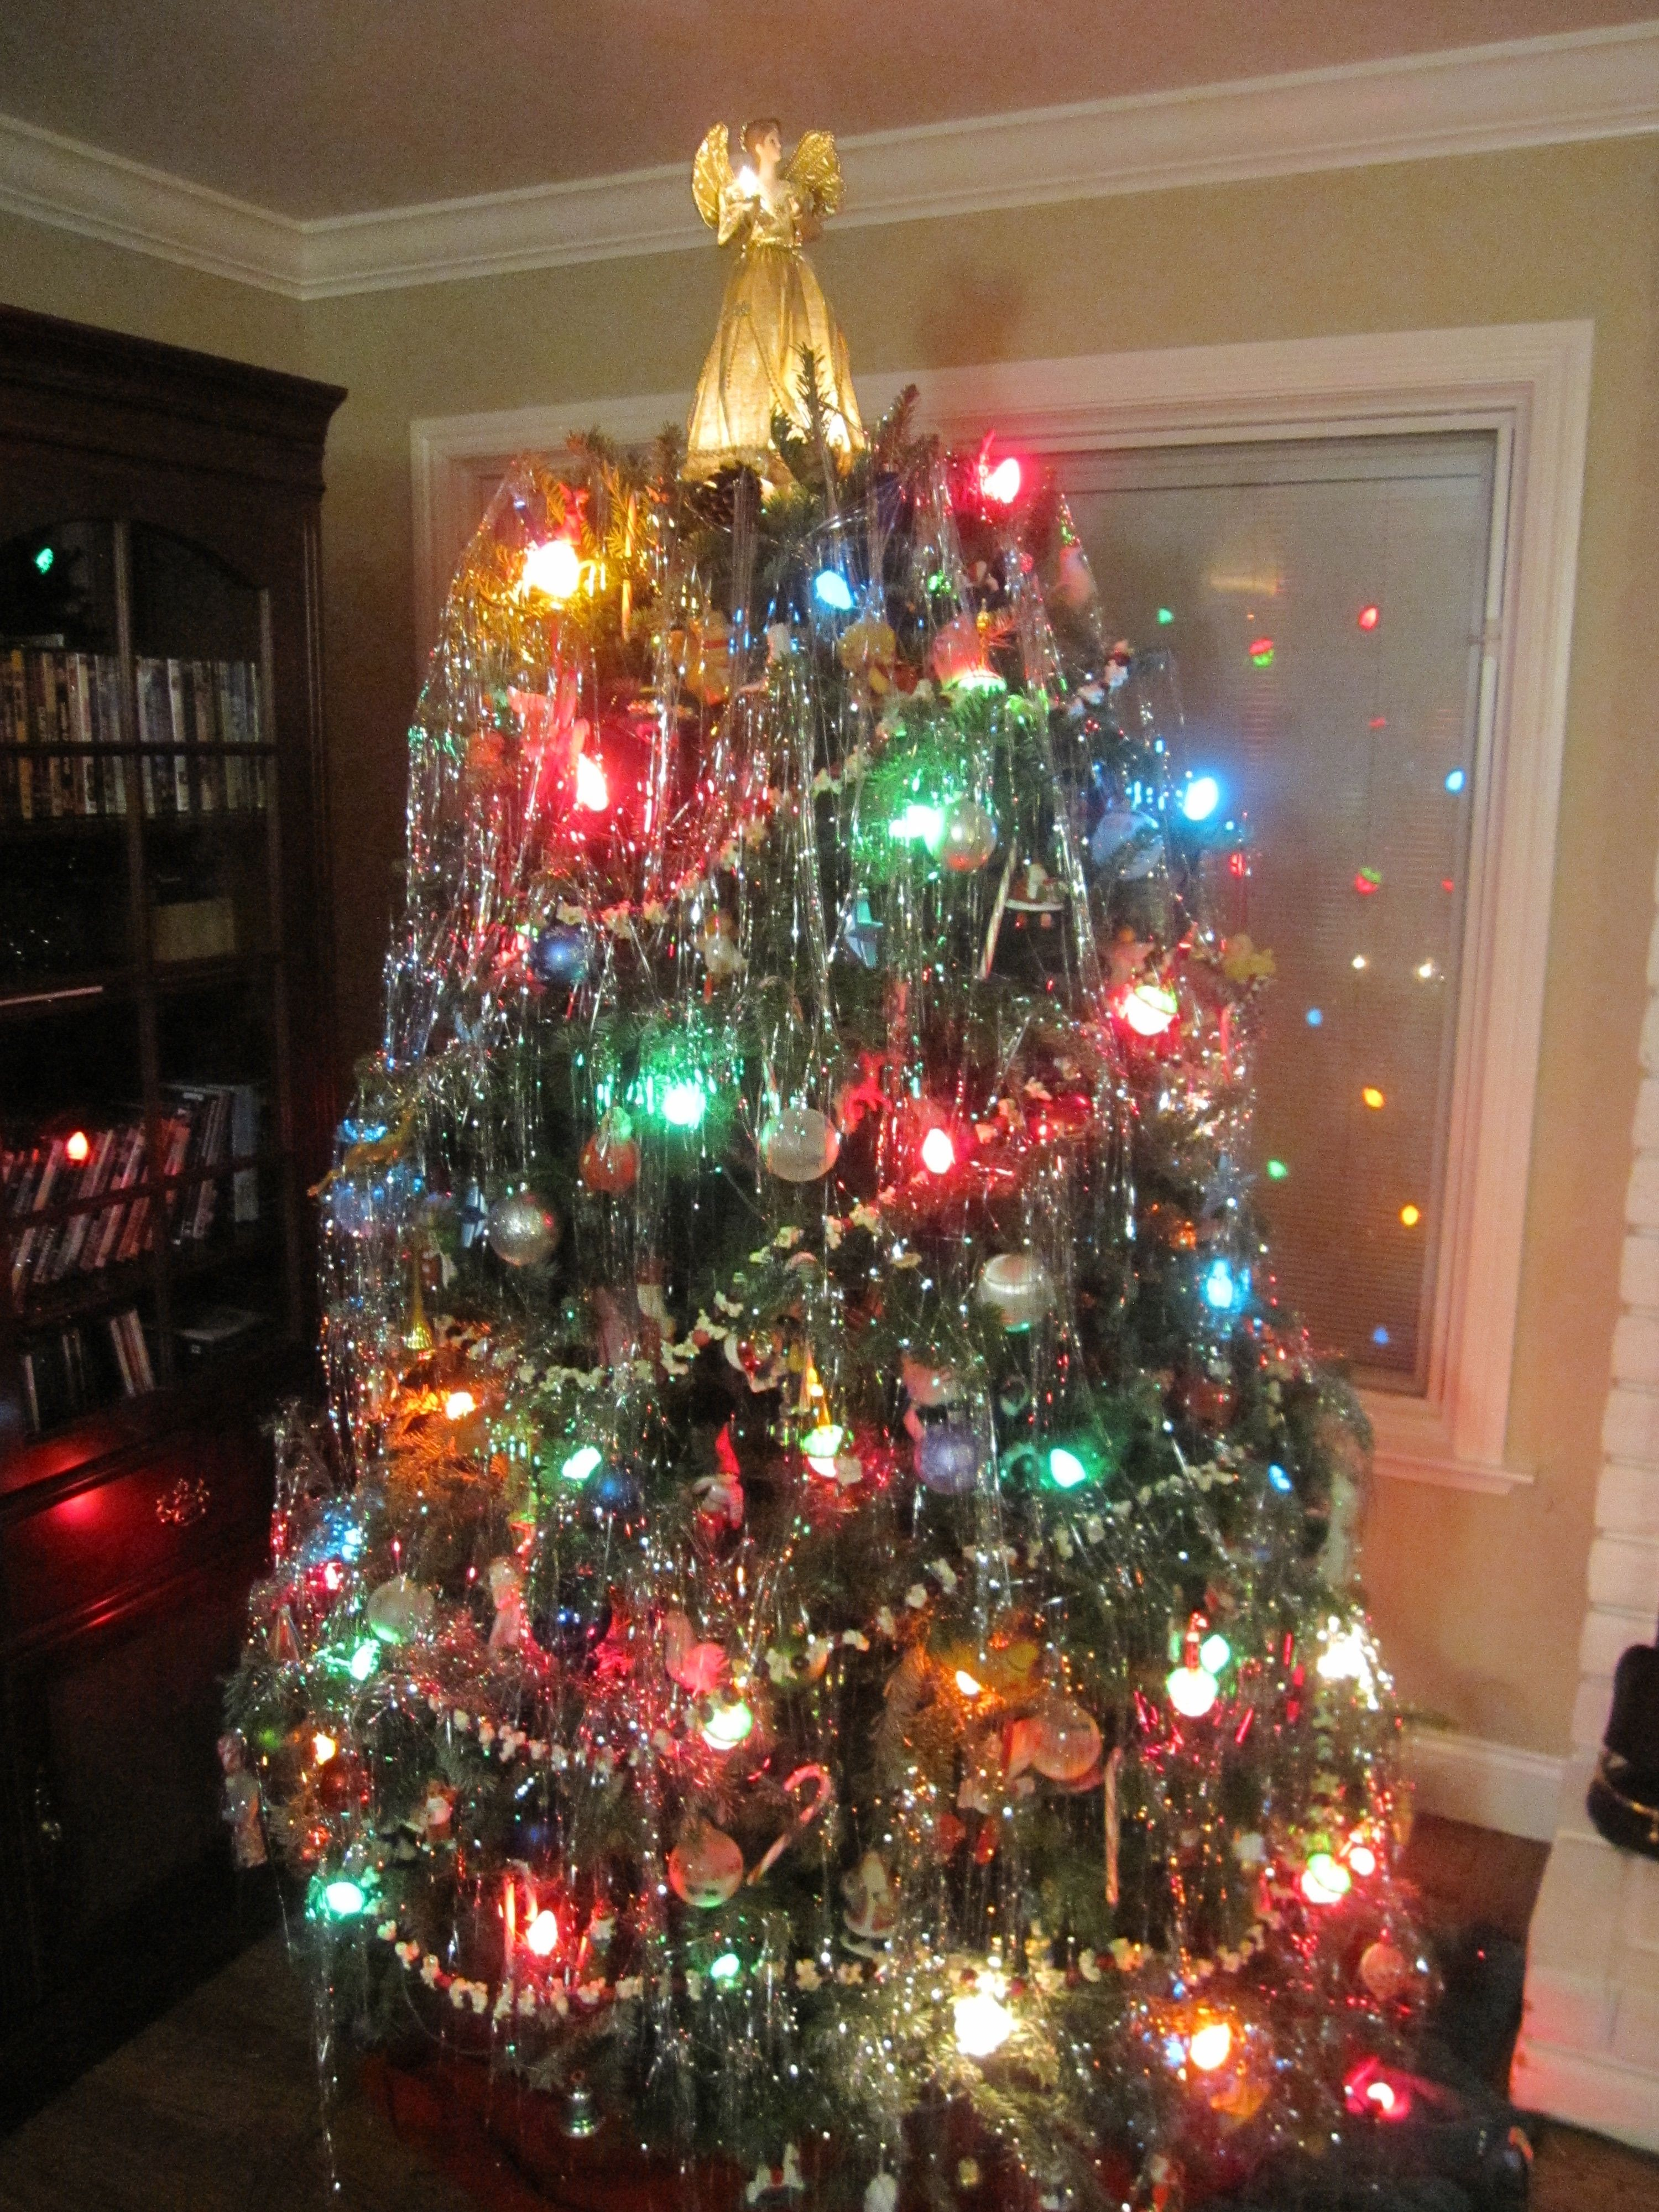 Bubble Lights Tinsel Popcorn And Cranberry Garland Christmas Doesn T Get Much Better Than This Vintage Christmas Tree Christmas Christmas House Lights